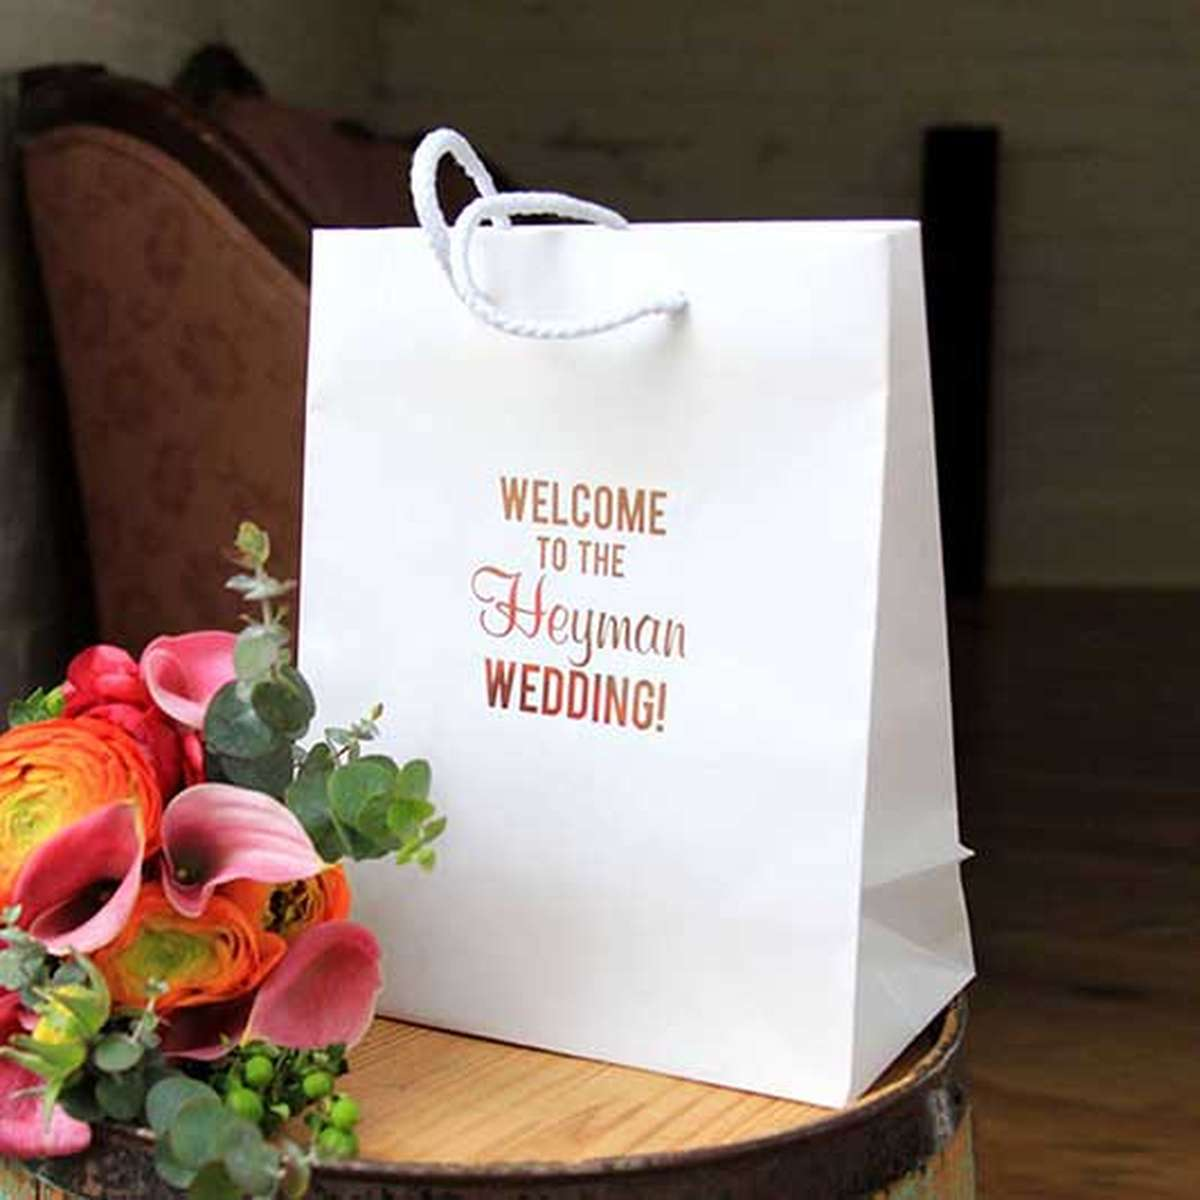 Euro Bag & Gift Bags u0026 Cake Boxes | Custom Bags u0026 Boxes | For Your Party